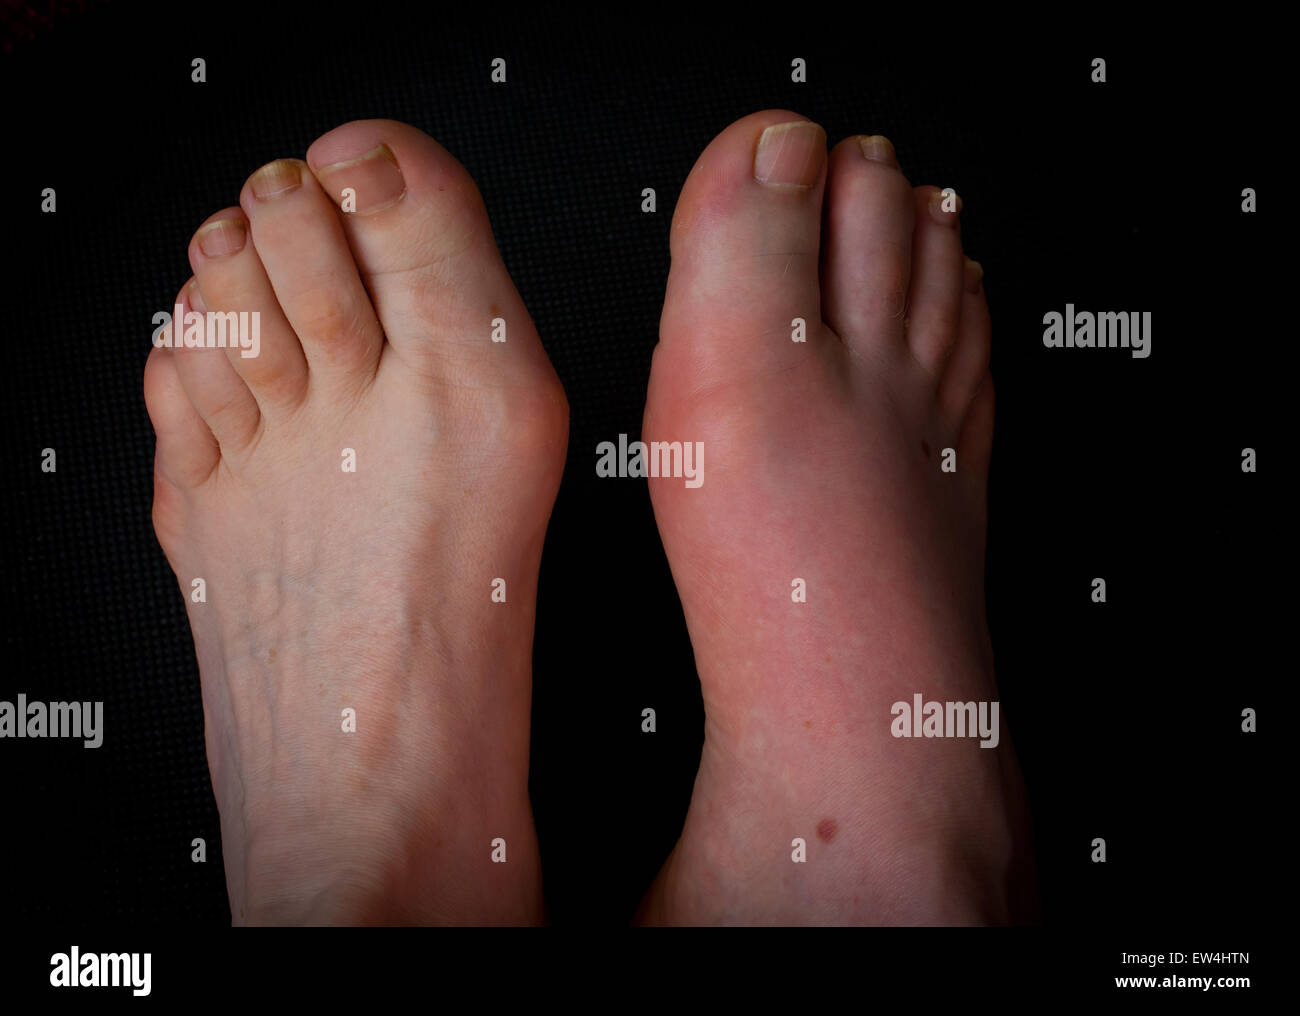 Gouty Toe! One of the most painful and debilitating afflictions affecting the feet. Needle-like crystals of Uric - Stock Image